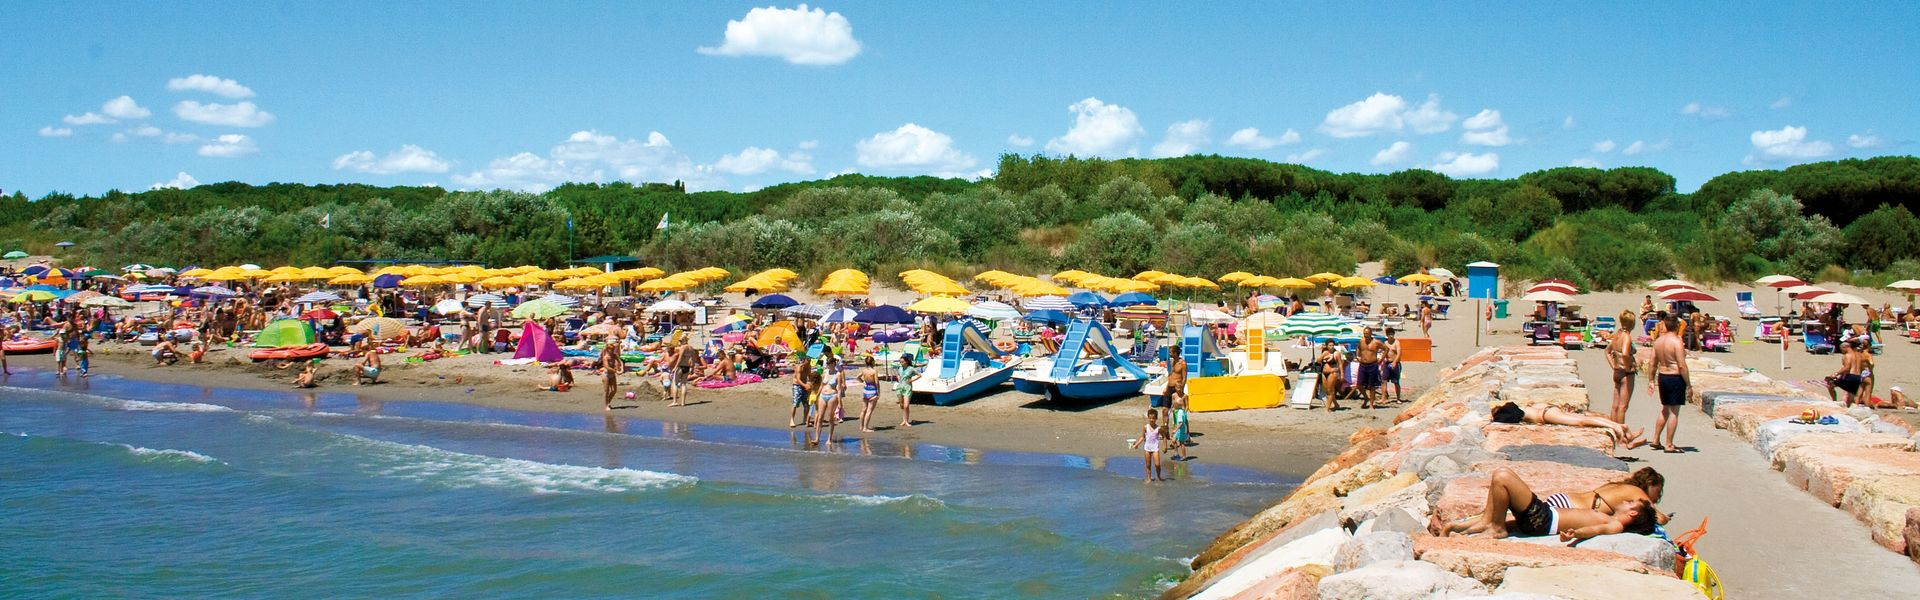 Campings in Eraclea Mare